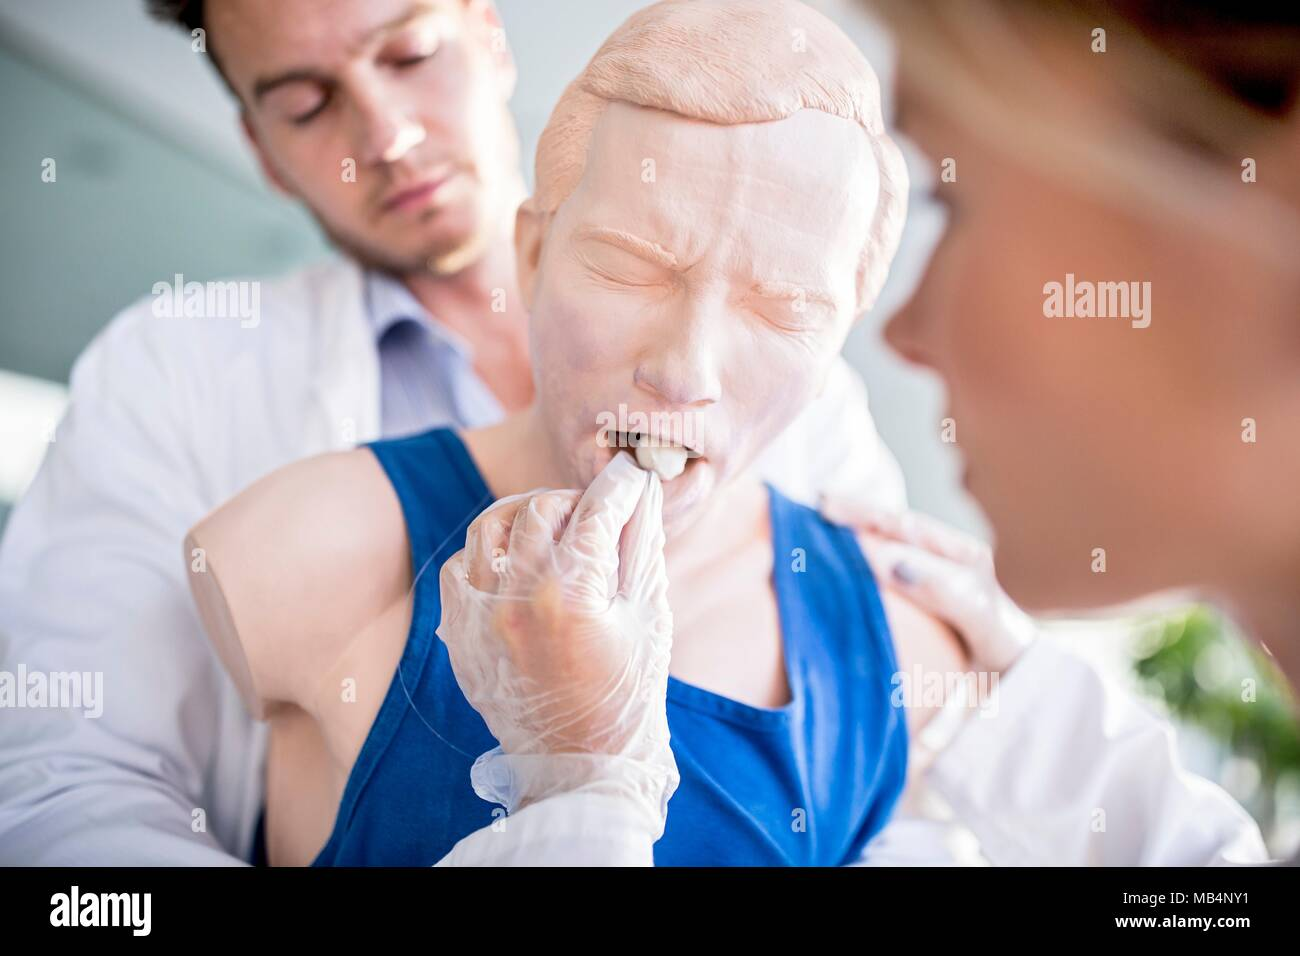 Doctor practising the Heimlich manoeuvre on a training dummy. - Stock Image